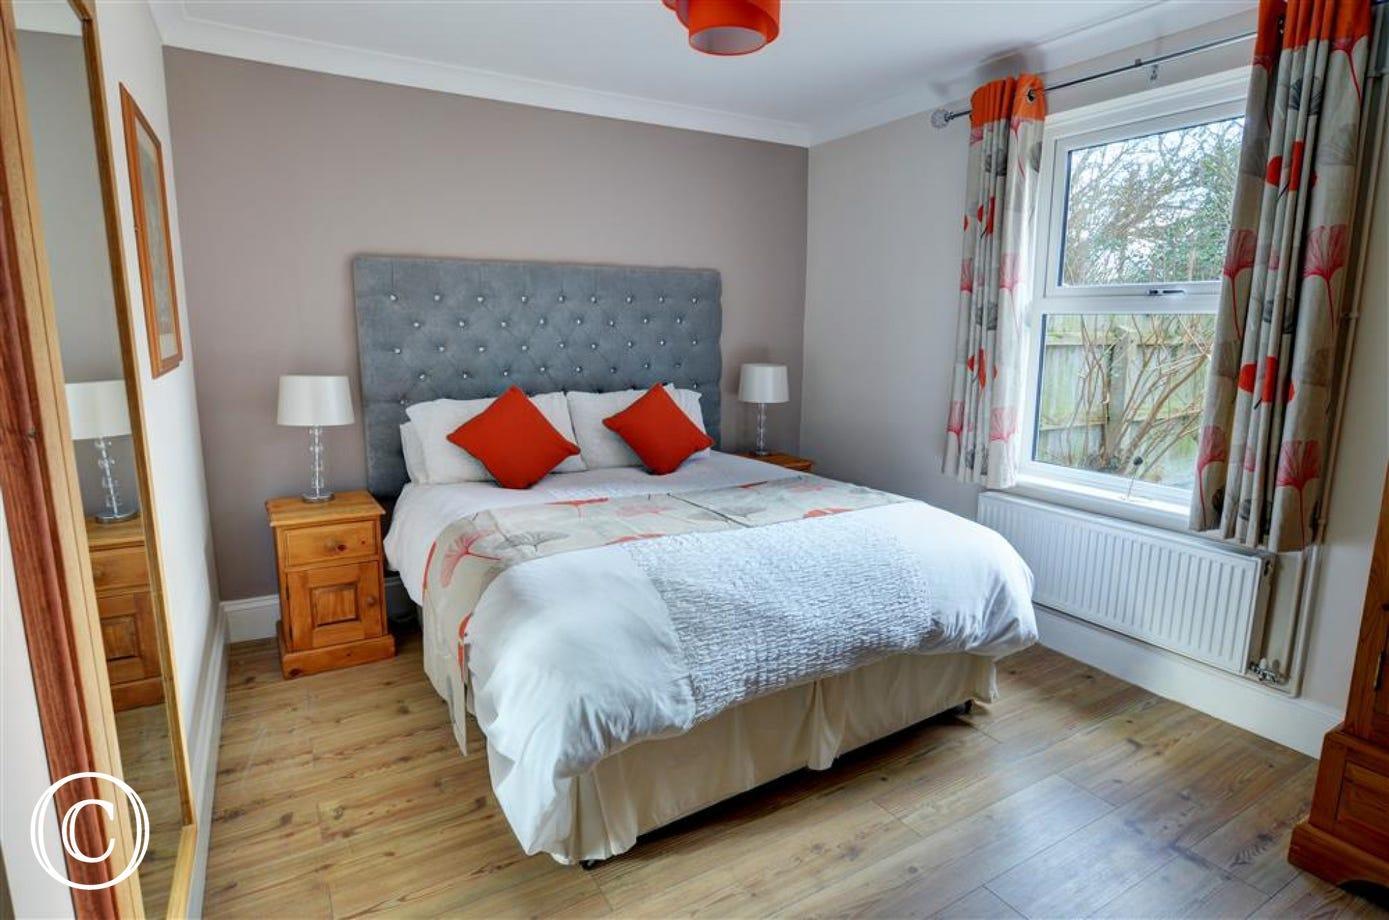 Main bedroom with a double bed